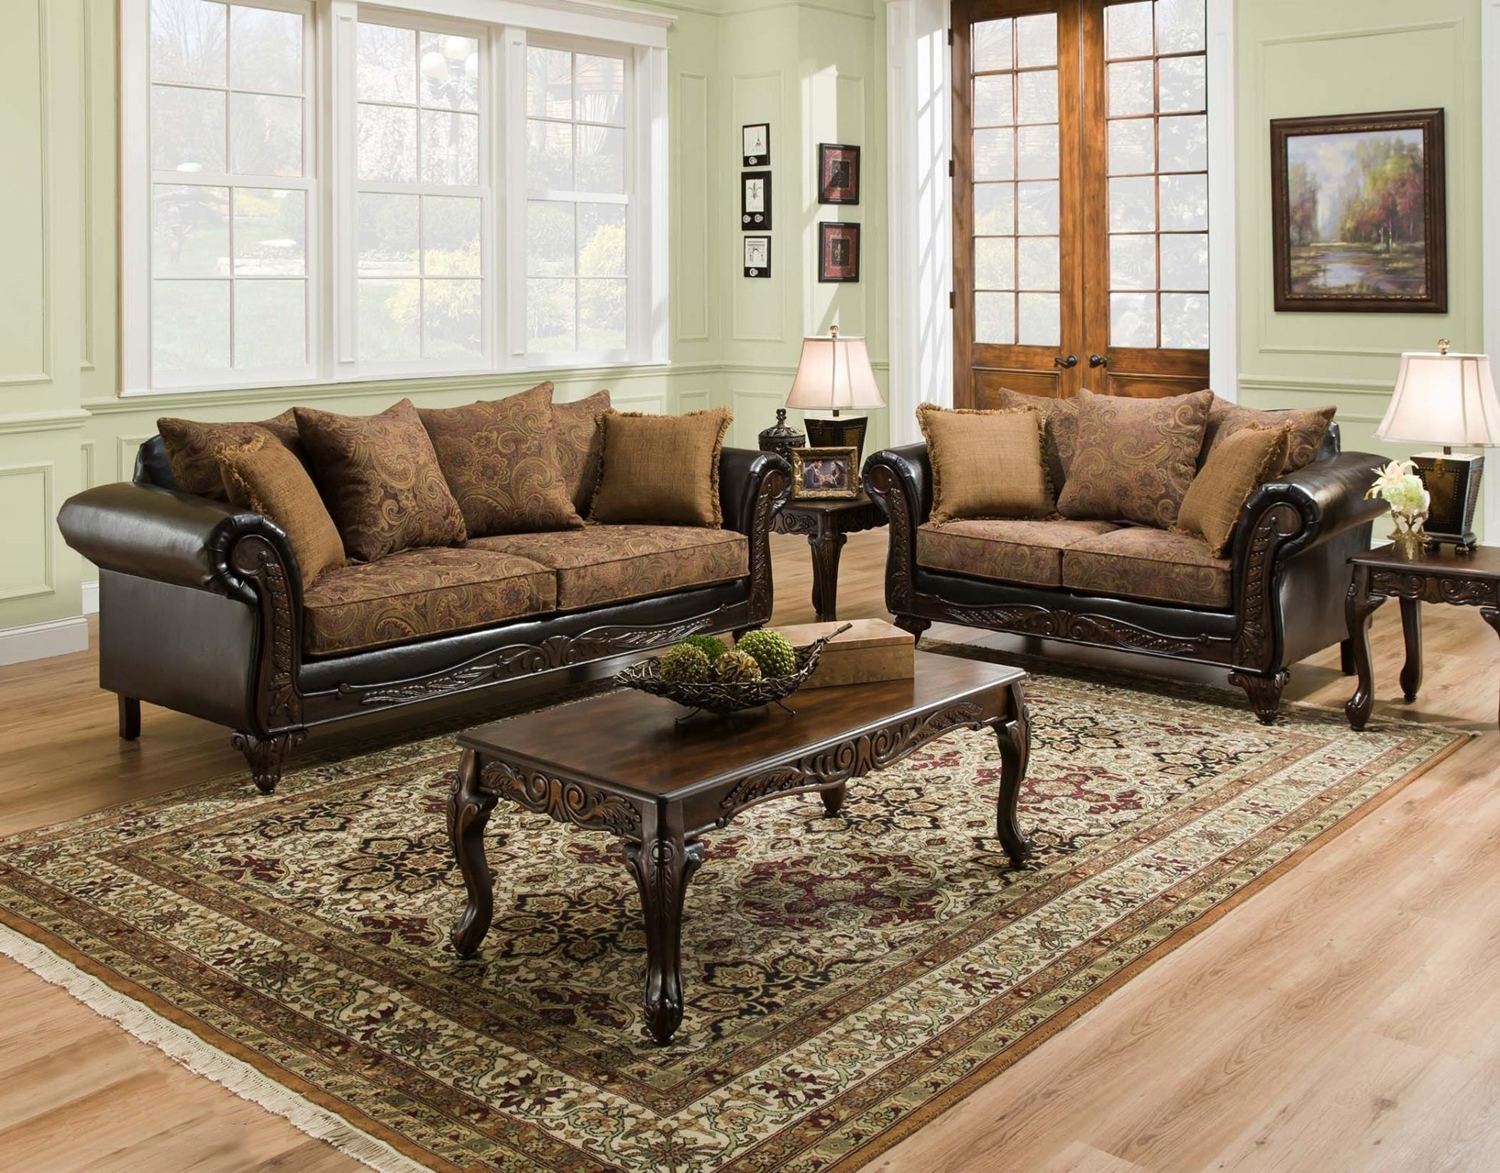 San marino traditional living room furniture set w wood for Living room sets